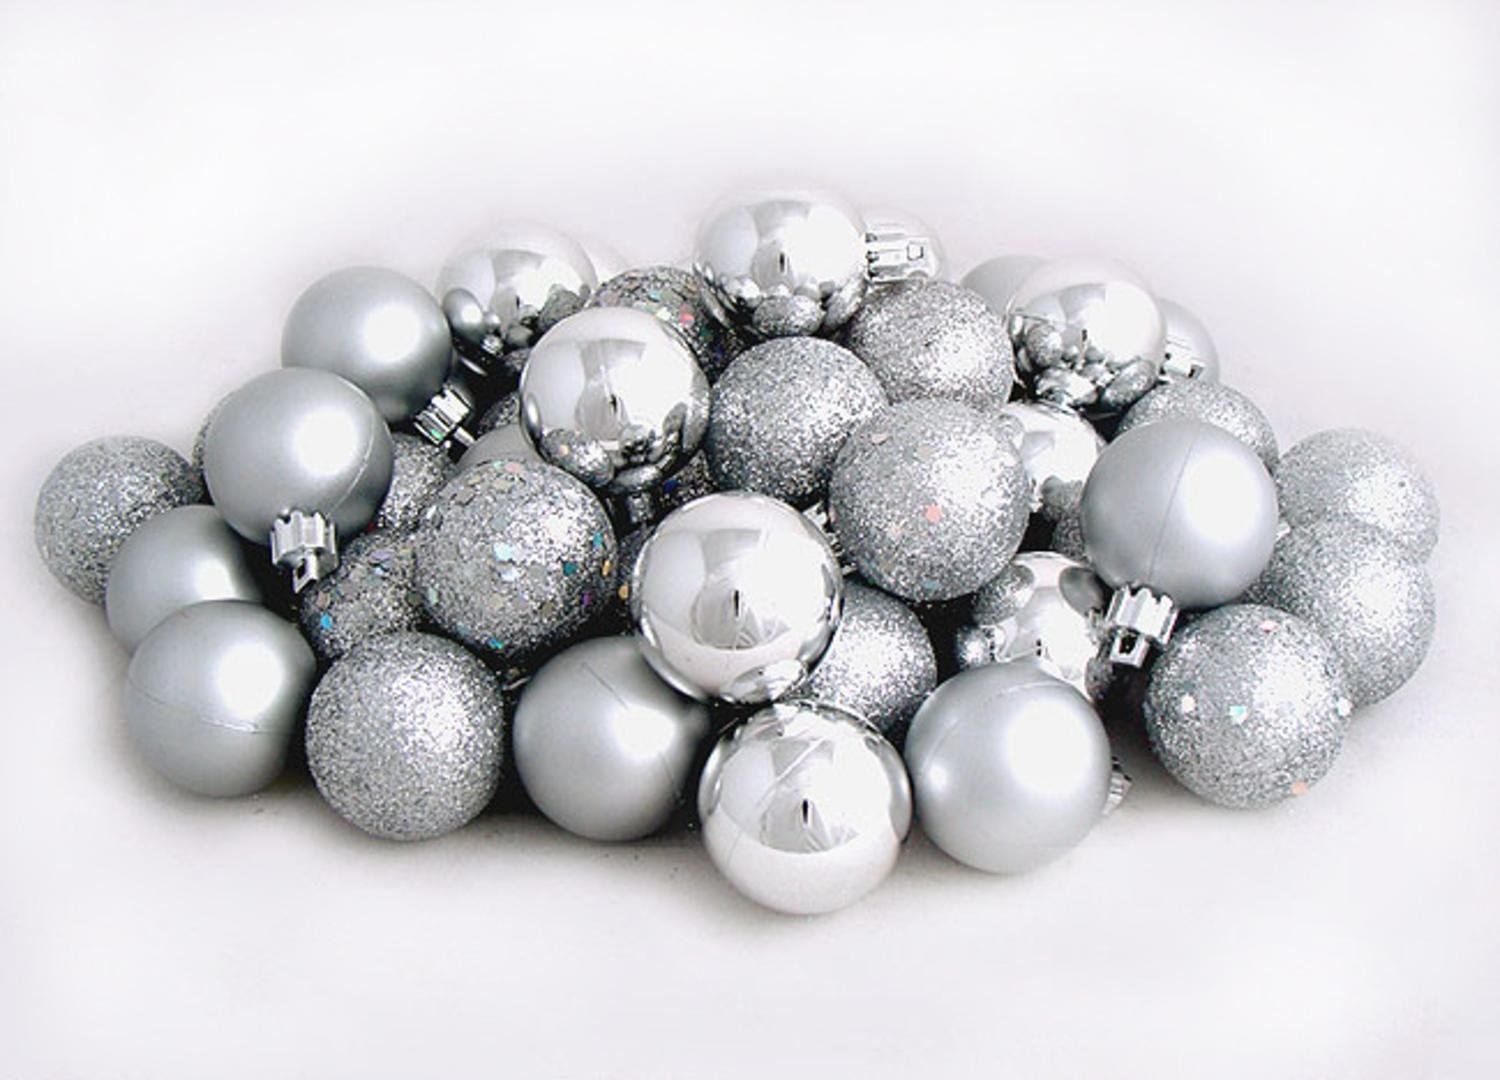 amazoncom 60ct silver splendor shatterproof 4 finish christmas ball ornaments 25 60mm home kitchen